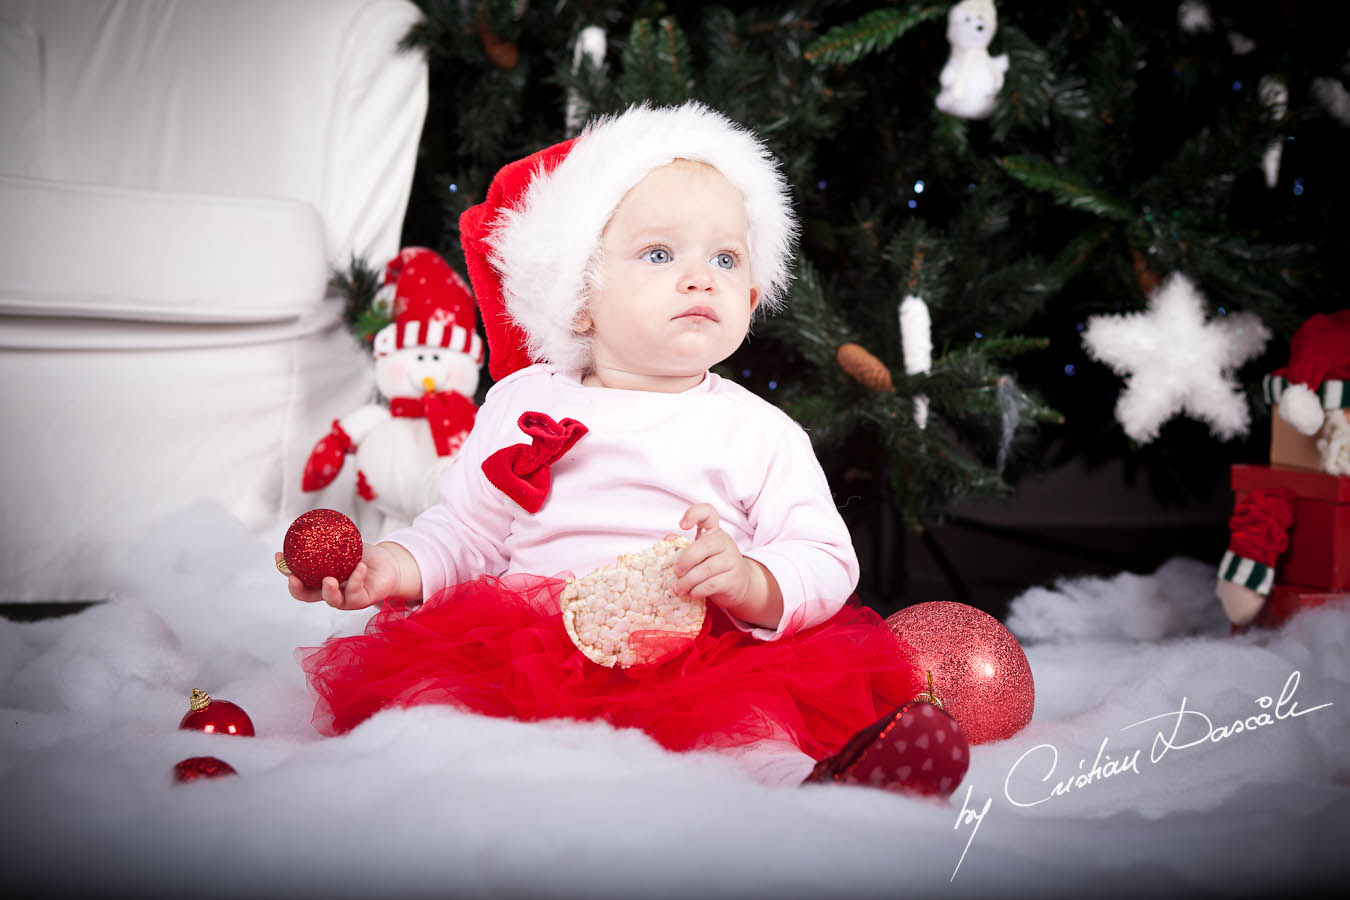 Emma Andreea - Christmas Photo Session. Photographer: Cristian Dascalu